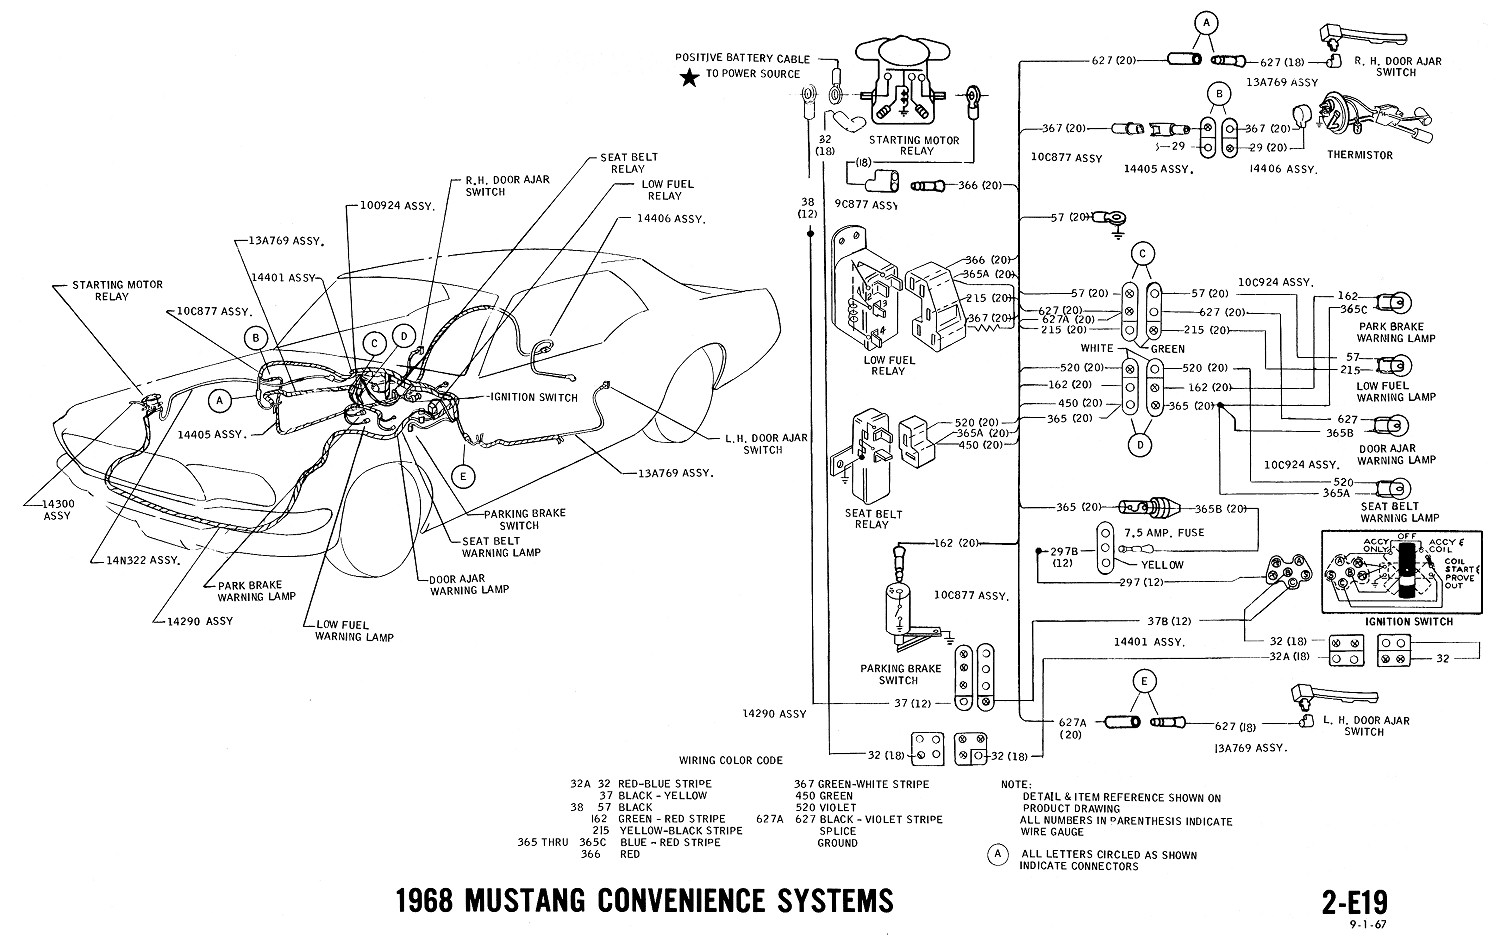 1999 Mustang Center Console Wiring Diagram Trusted 1968 Ford F 250 69 Alternator Schematic Example Electrical Rh Cranejapan Co 98 Radio